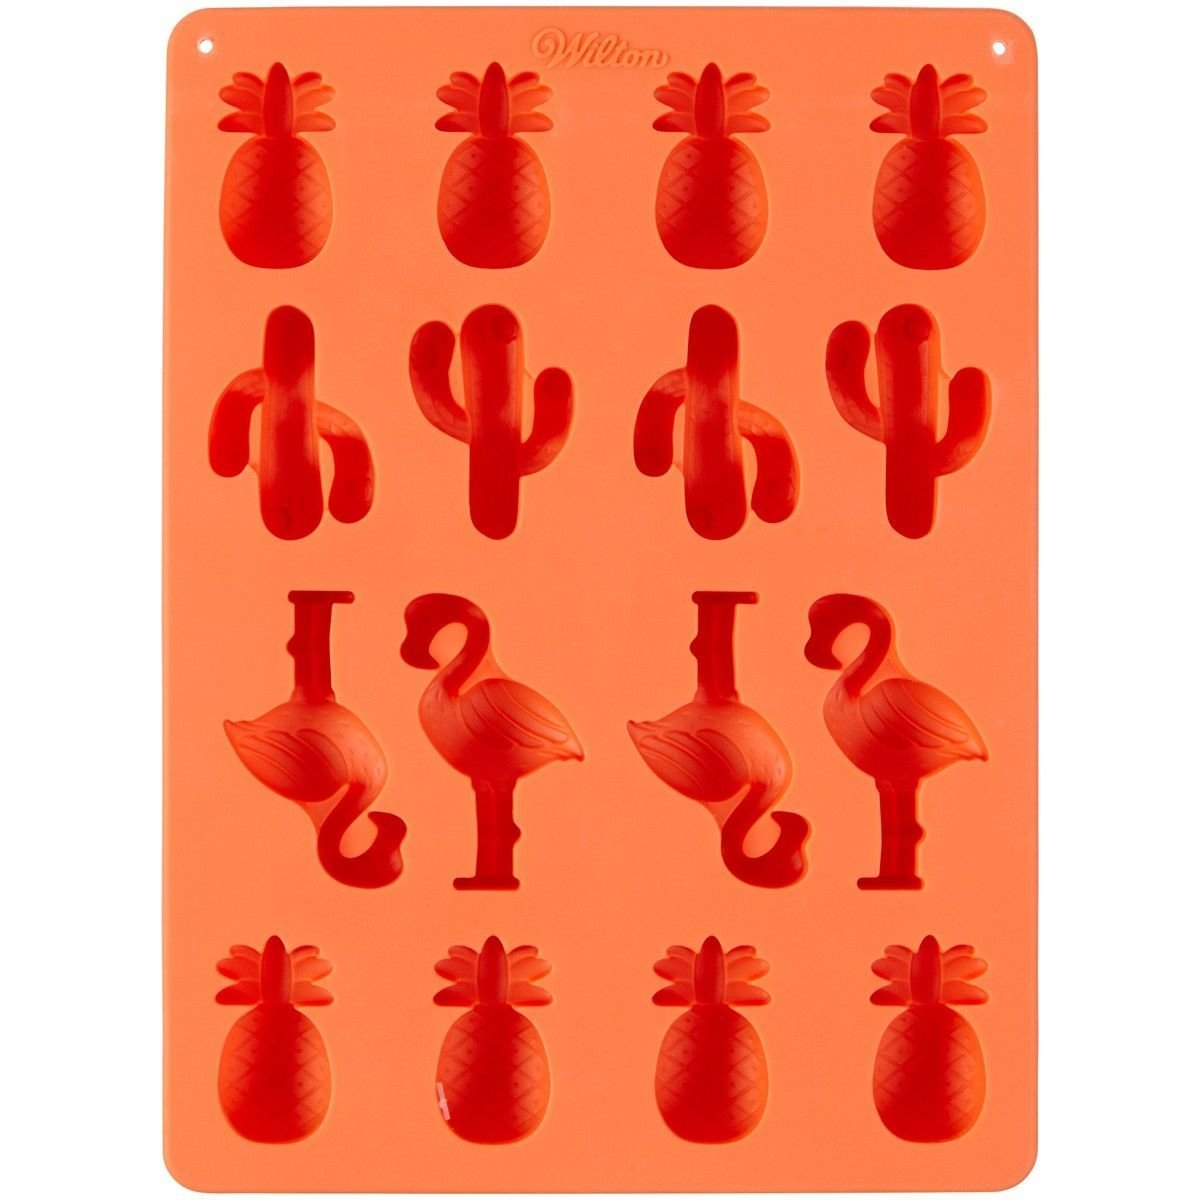 Wilton Silicone Candy Mould -PINEAPPLE, CACTI, FLAMINGO -Καλούπι Σιλικόνης ανανάς, κάκτος, φλαμίνγκο